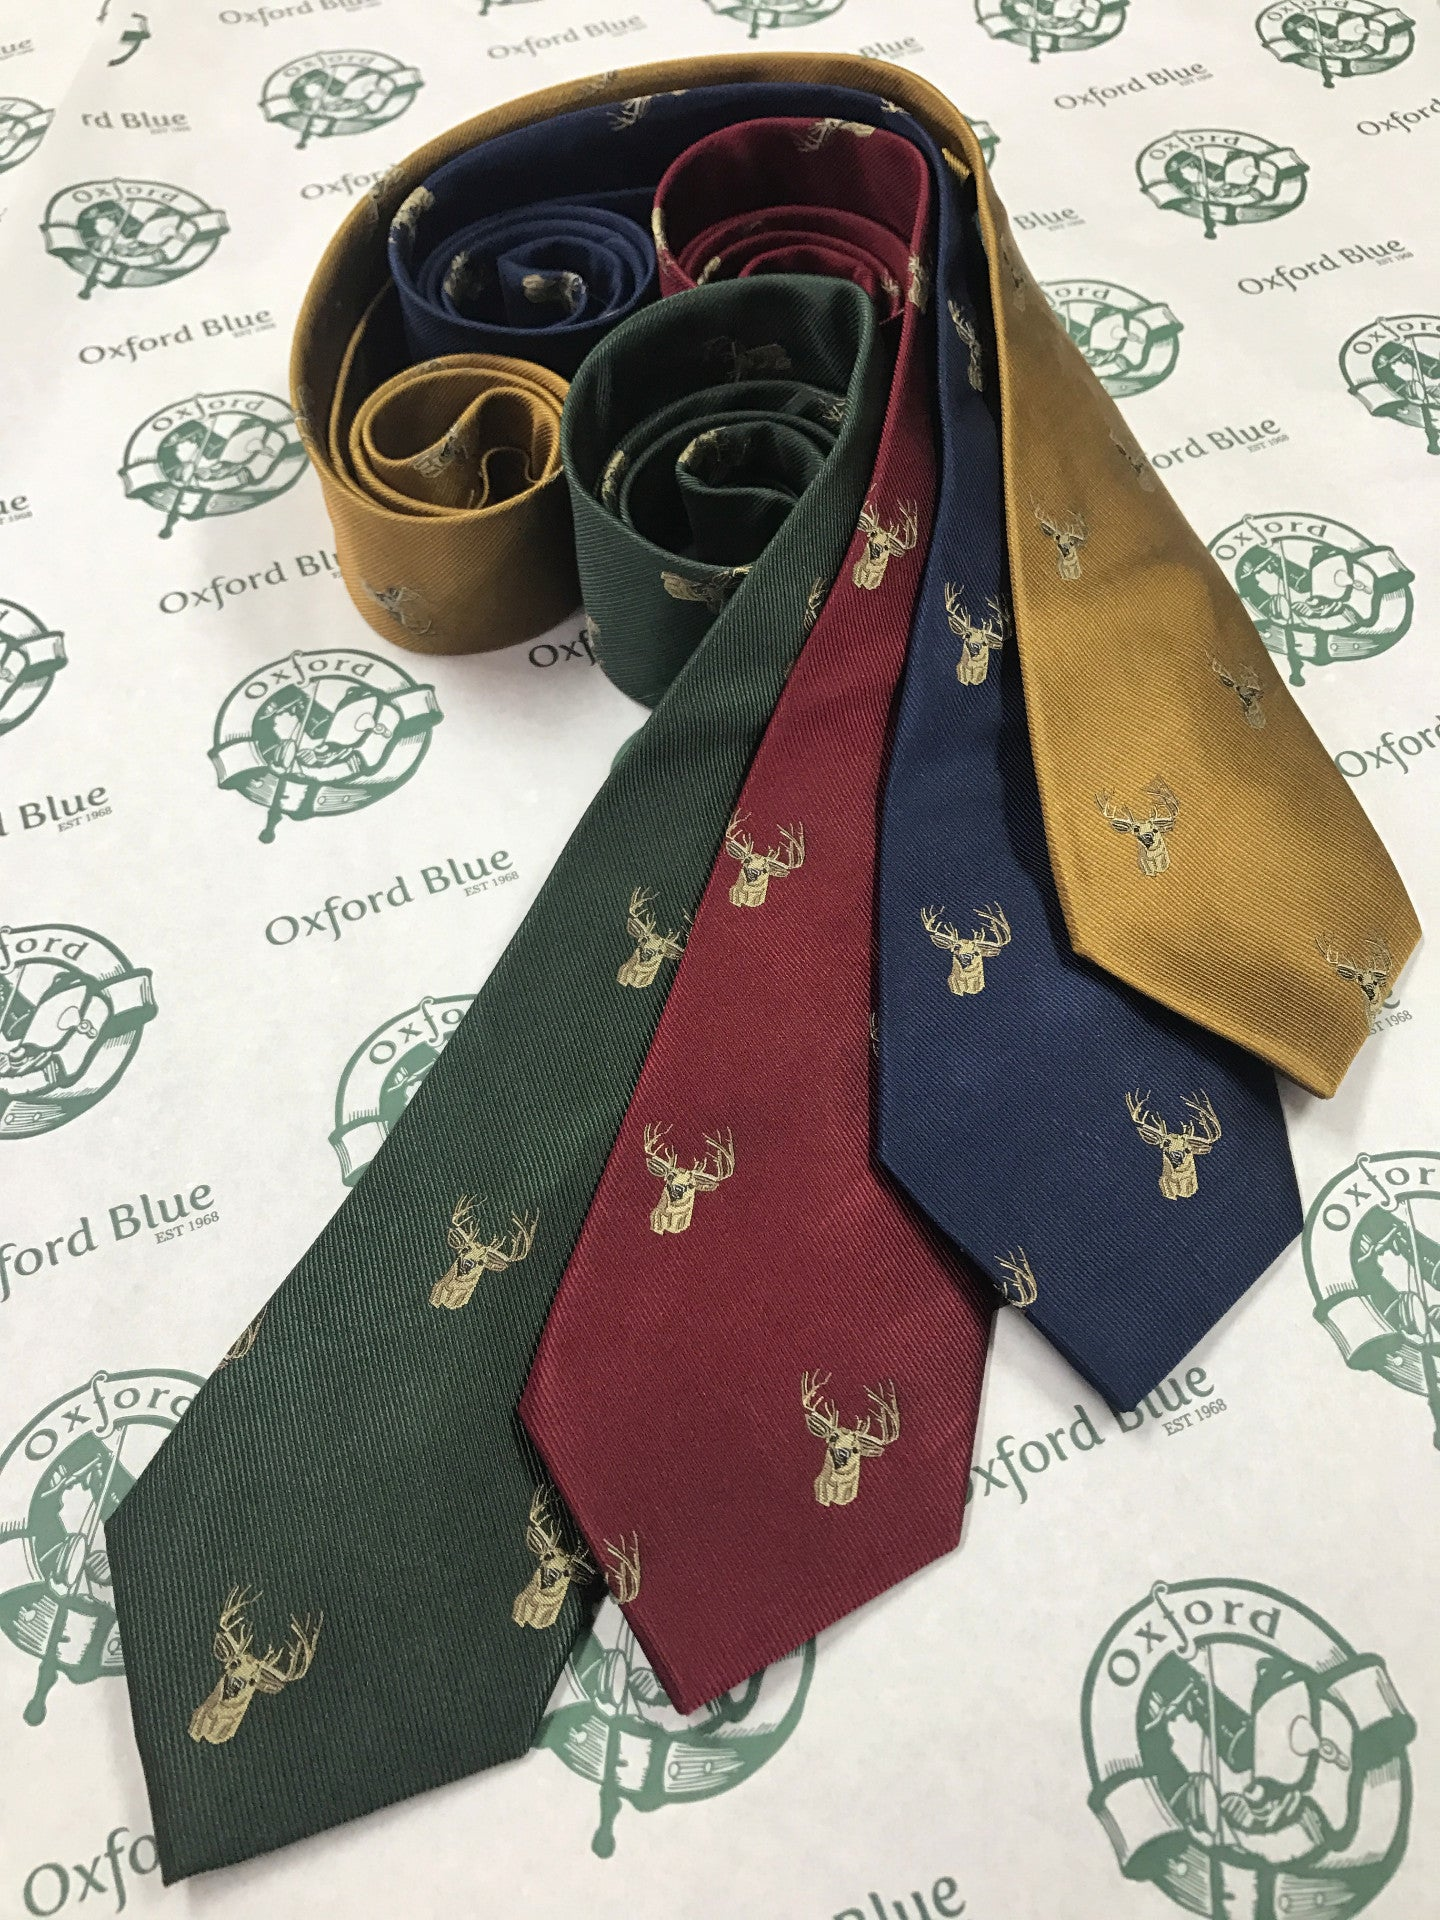 GT11 - 100% Silk Woven Tie - Stag - GOLD - Oxford Blue